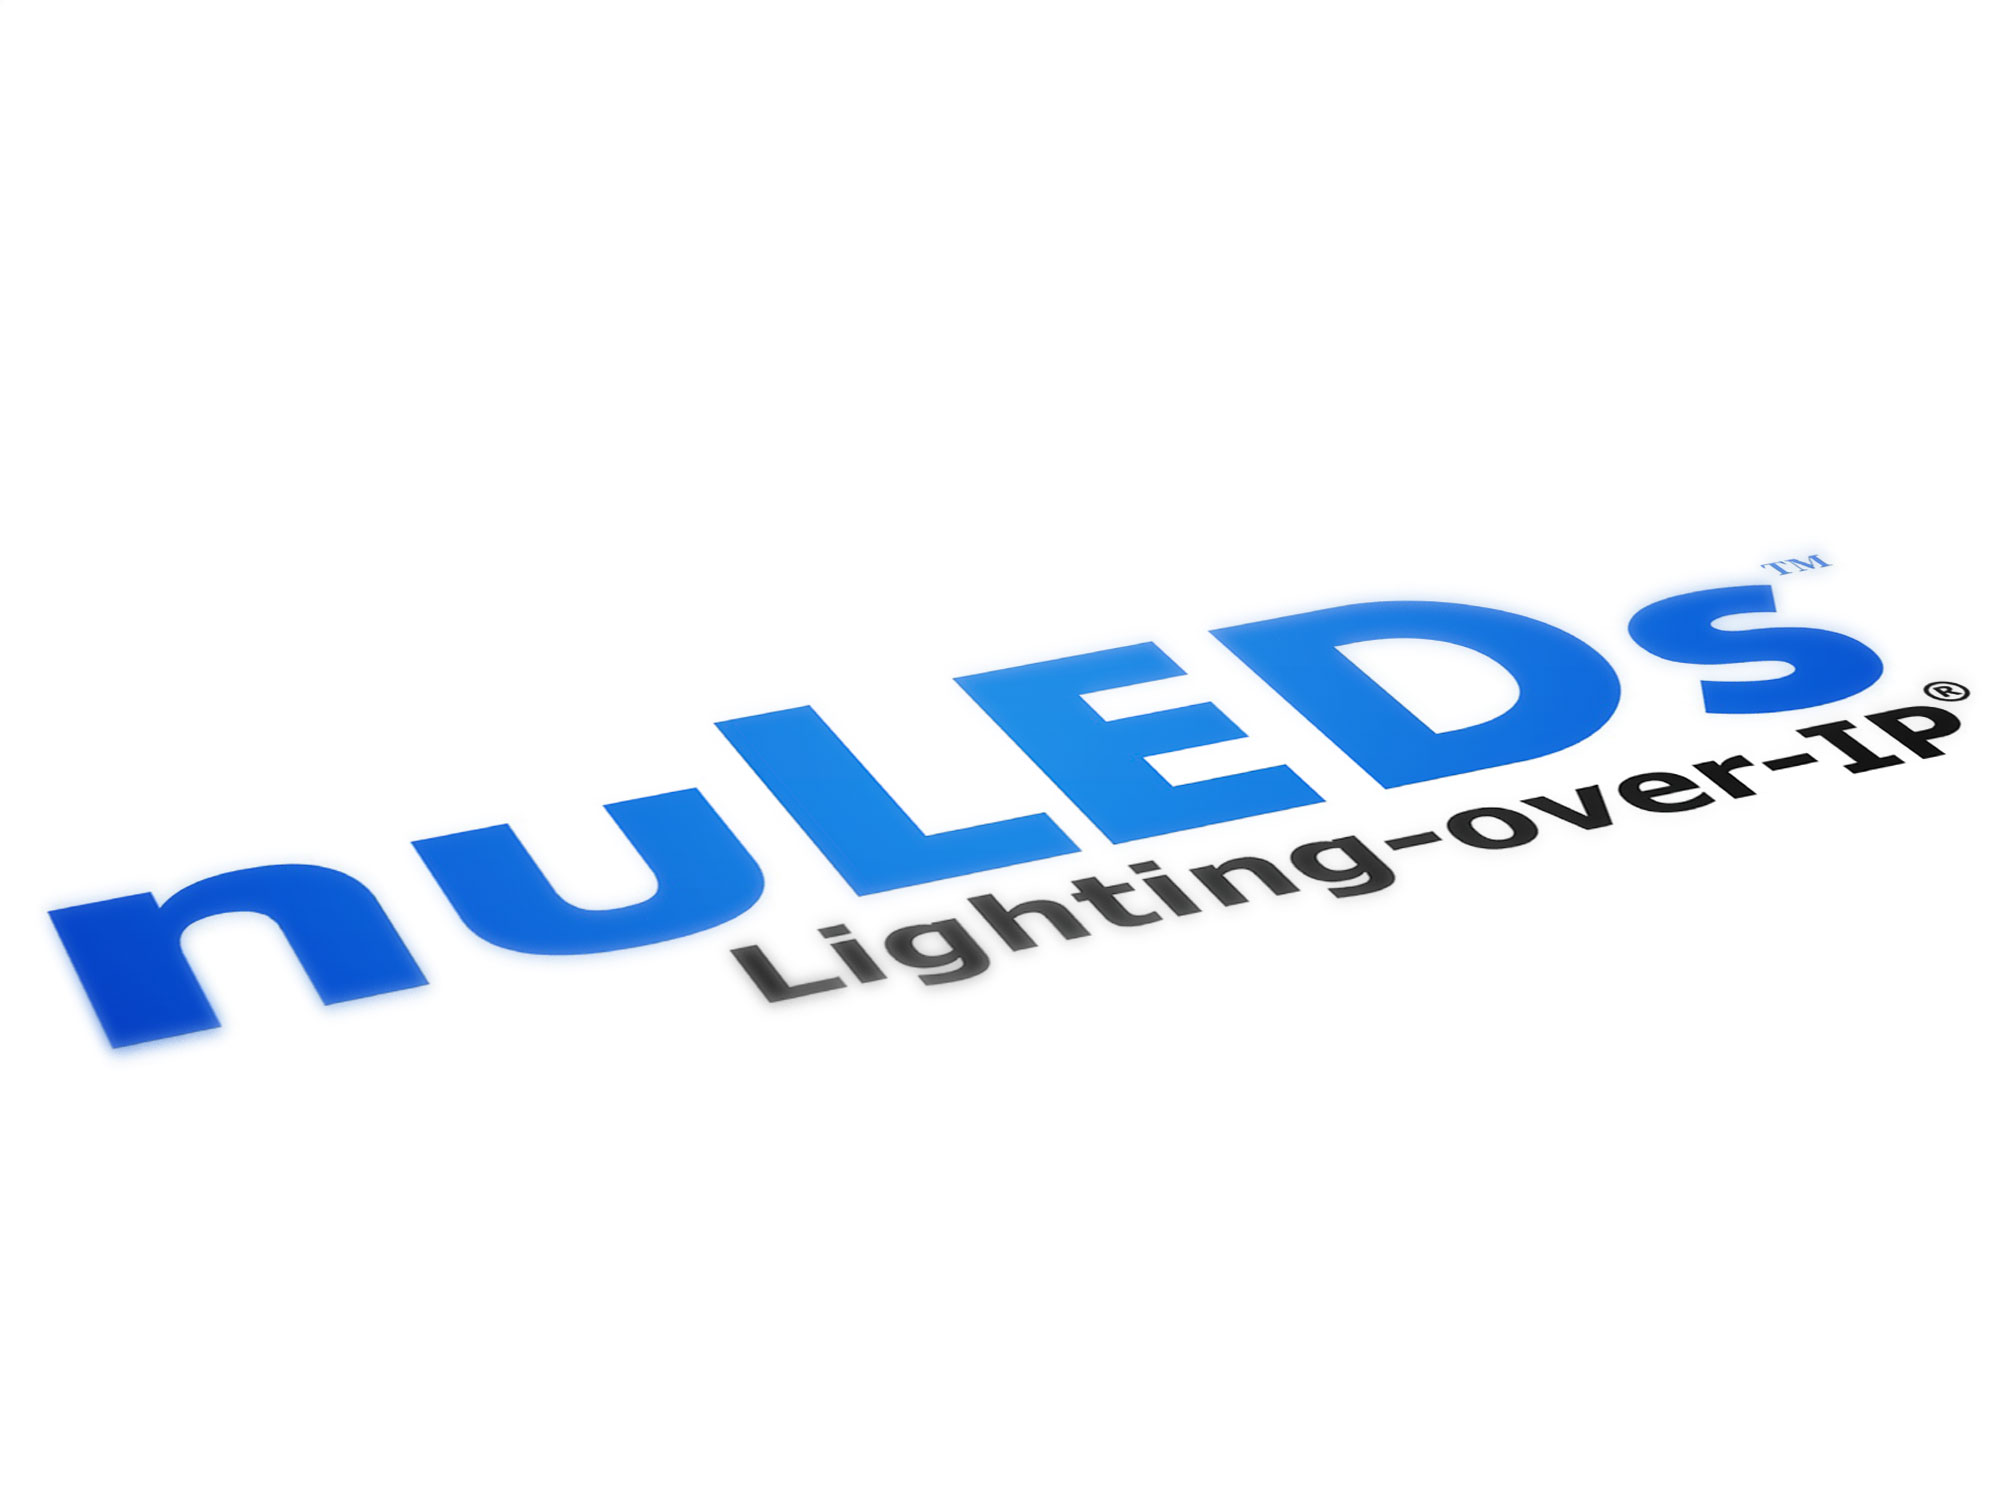 Fisher Lighting and Controls NuLEDs Power Over Ethernet Logo